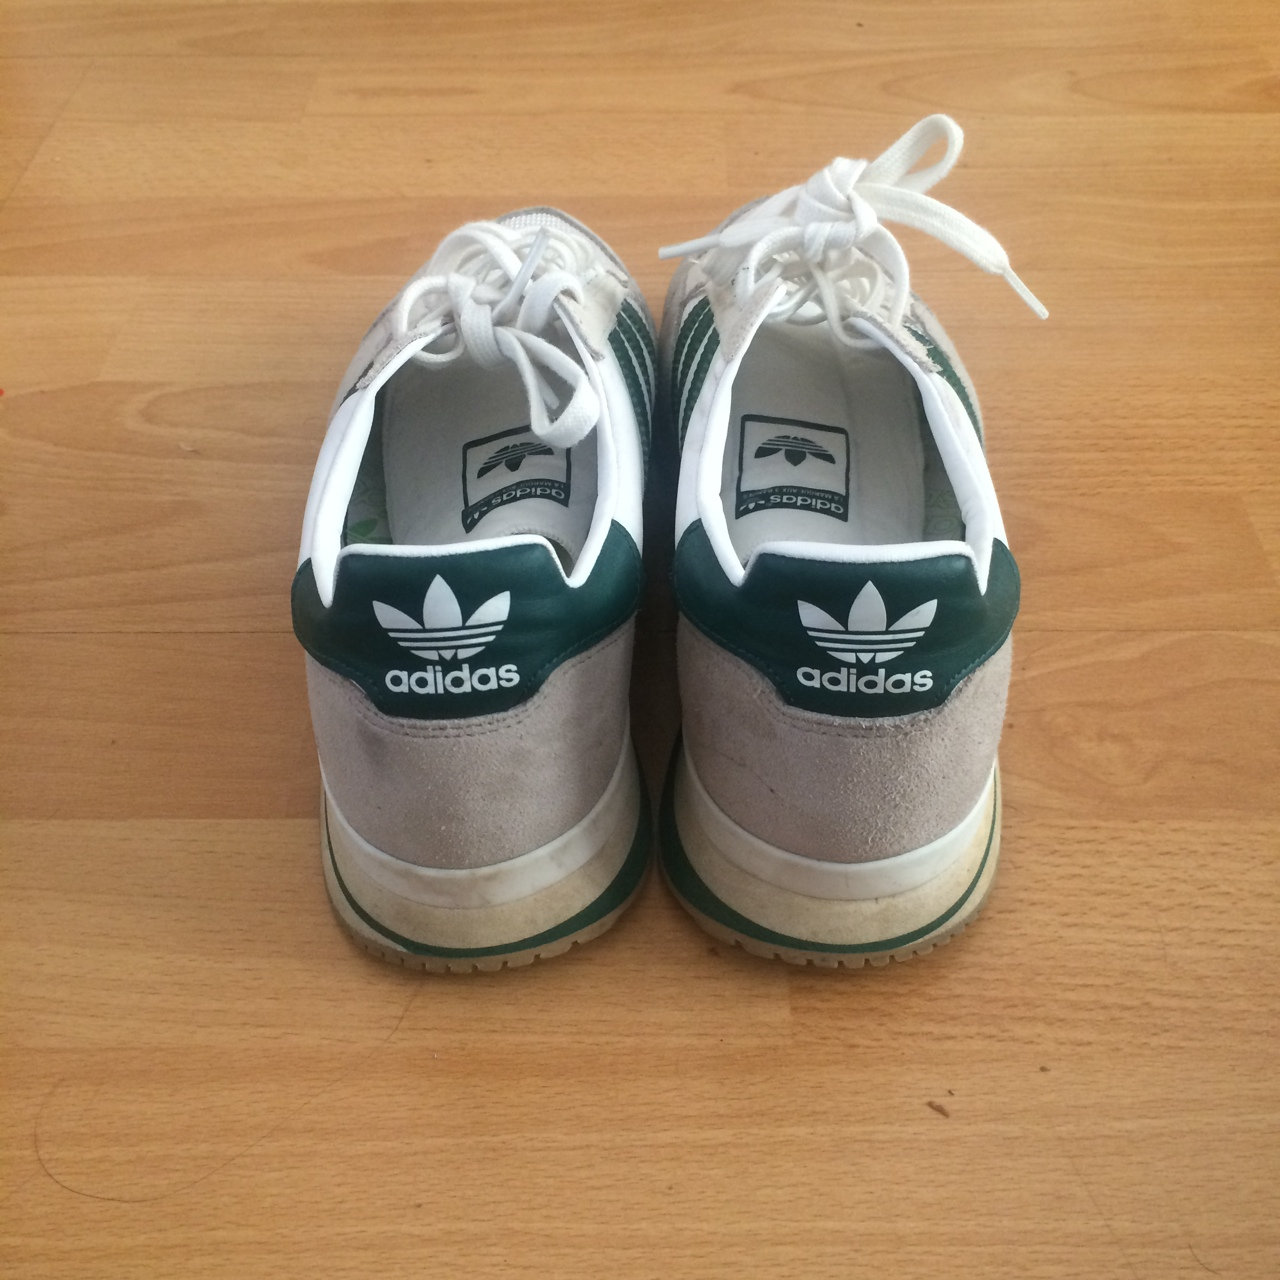 sale retailer a7a24 41729 Adidas X United Arrows ZX 500 OG UA - White and Forest ...